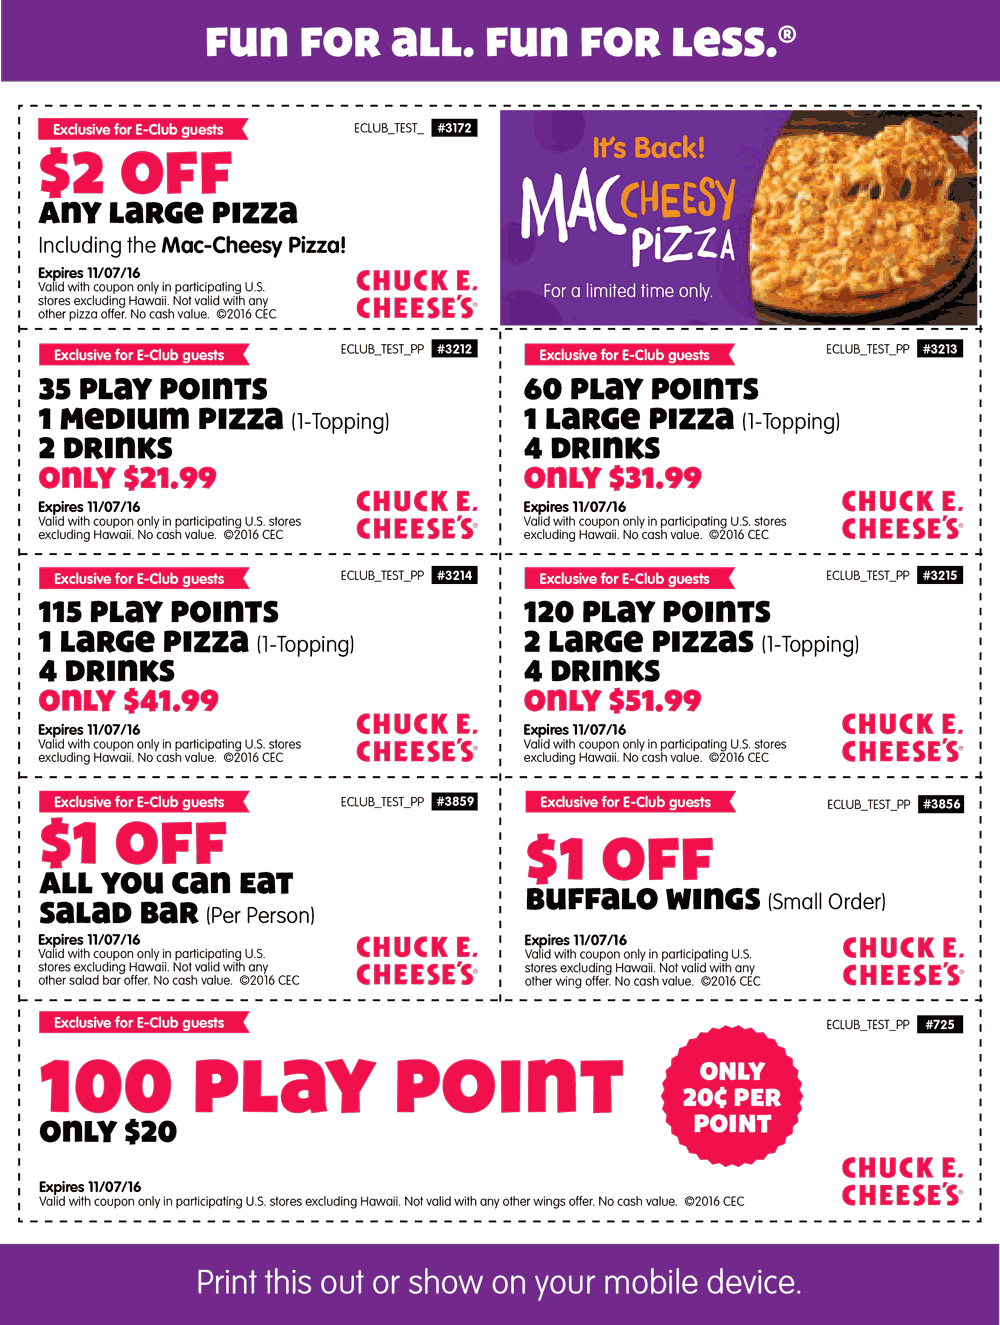 ChuckE.Cheese.com Promo Coupon 100 tokens for $20 & more at Chuck E. Cheese